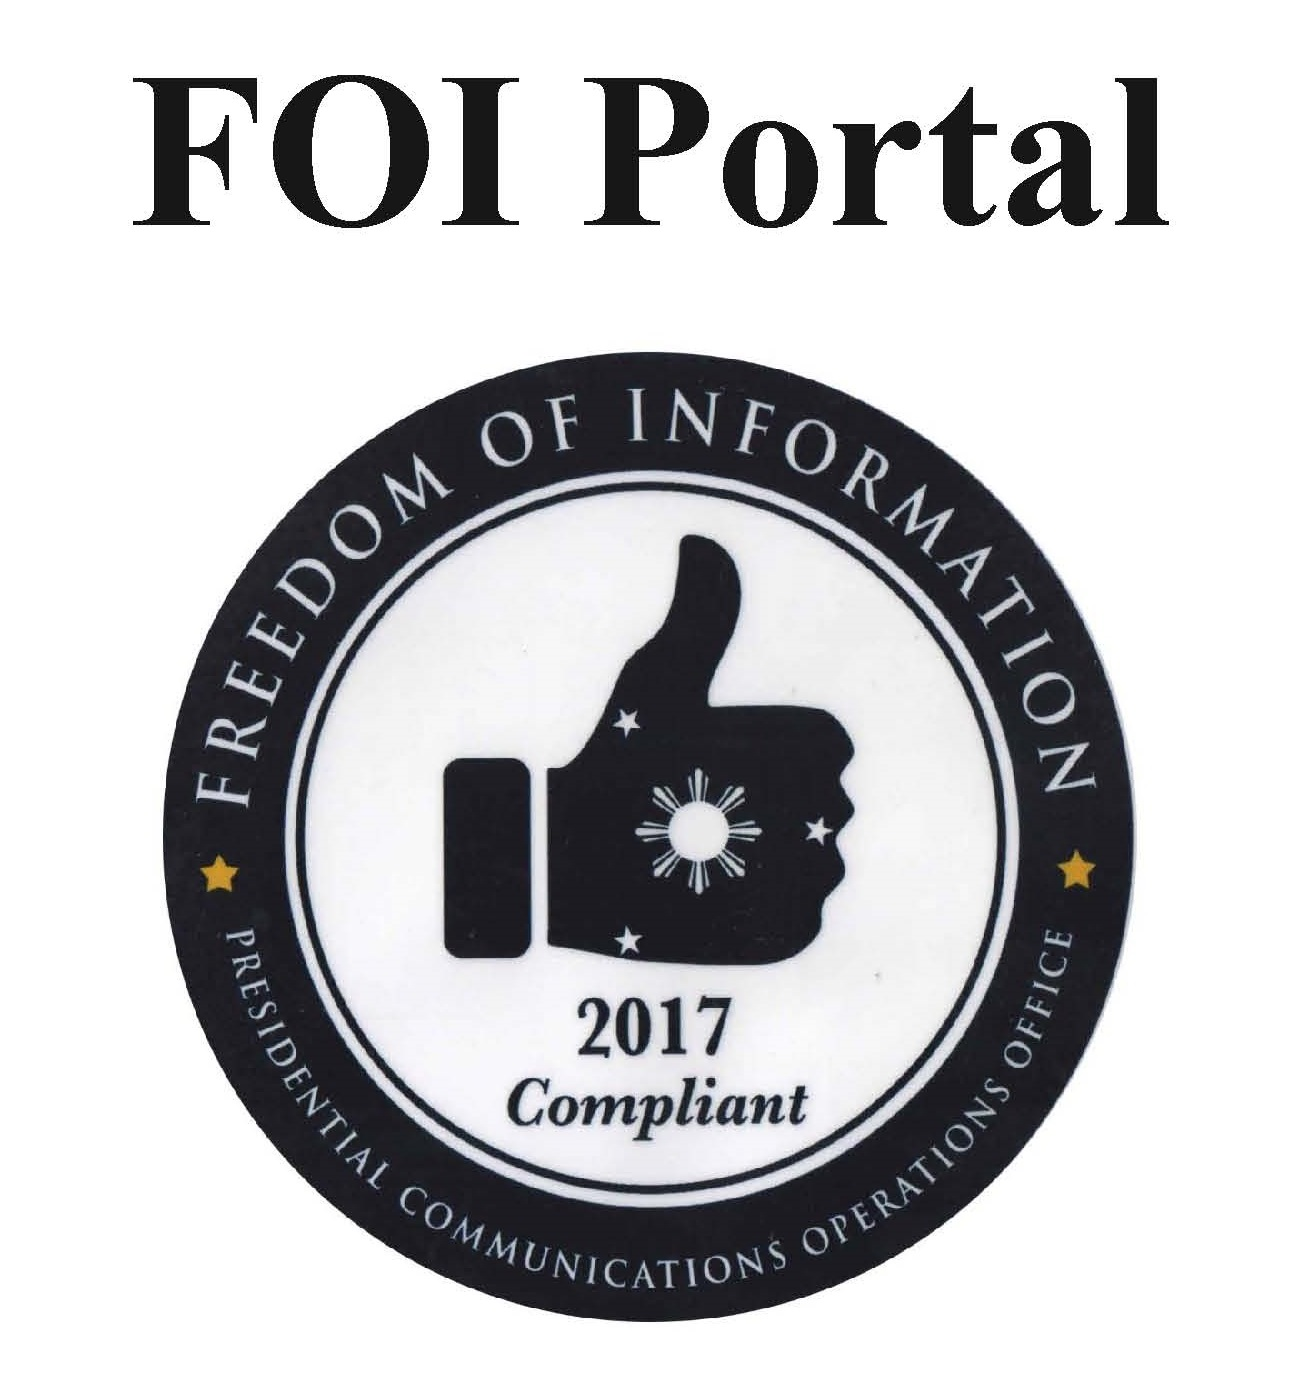 FOI Portal with text